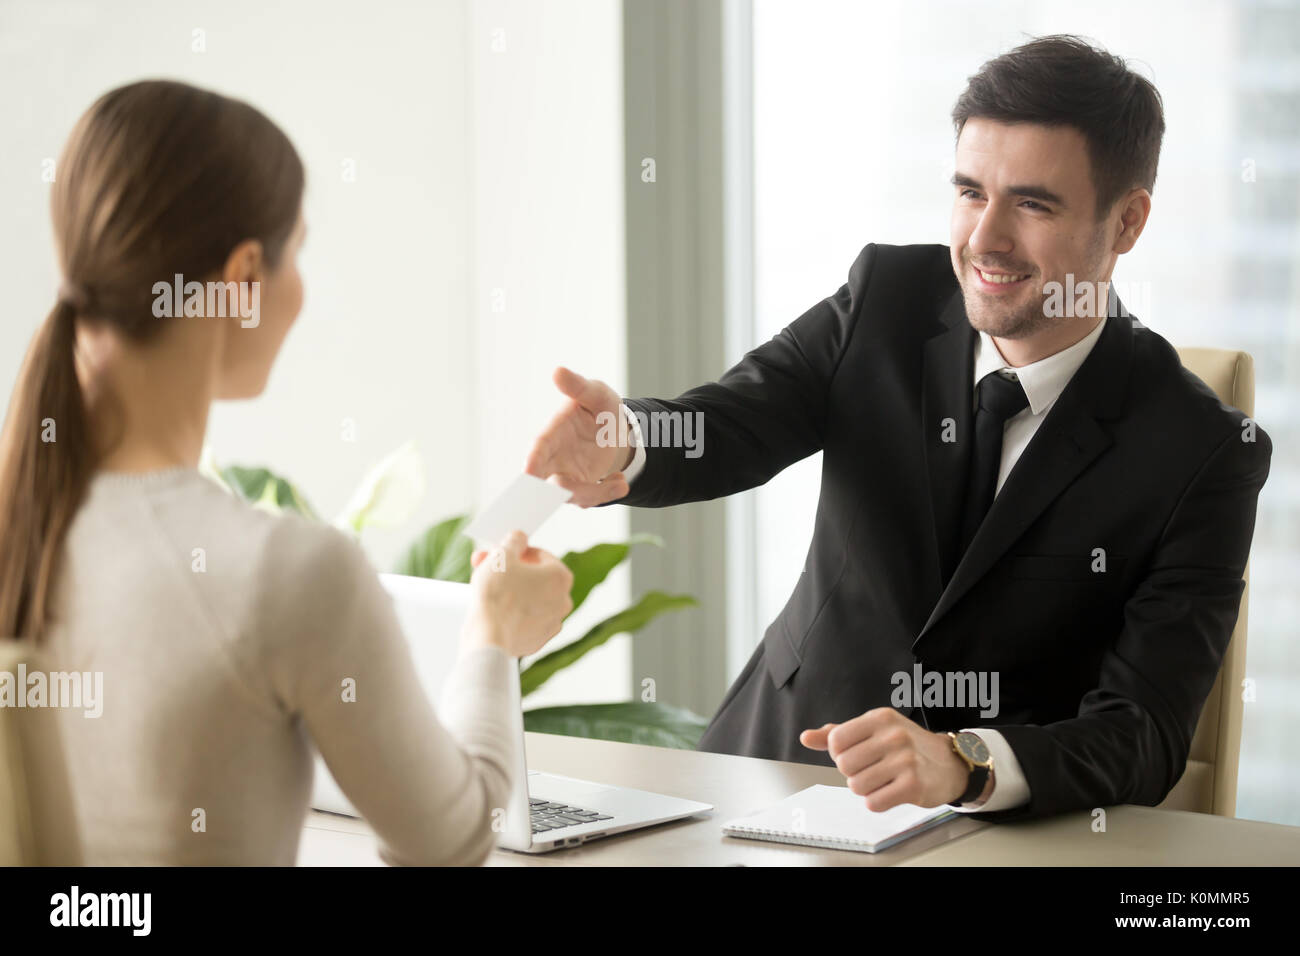 Businessman giving visiting business card to businesswoman at of - Stock Image